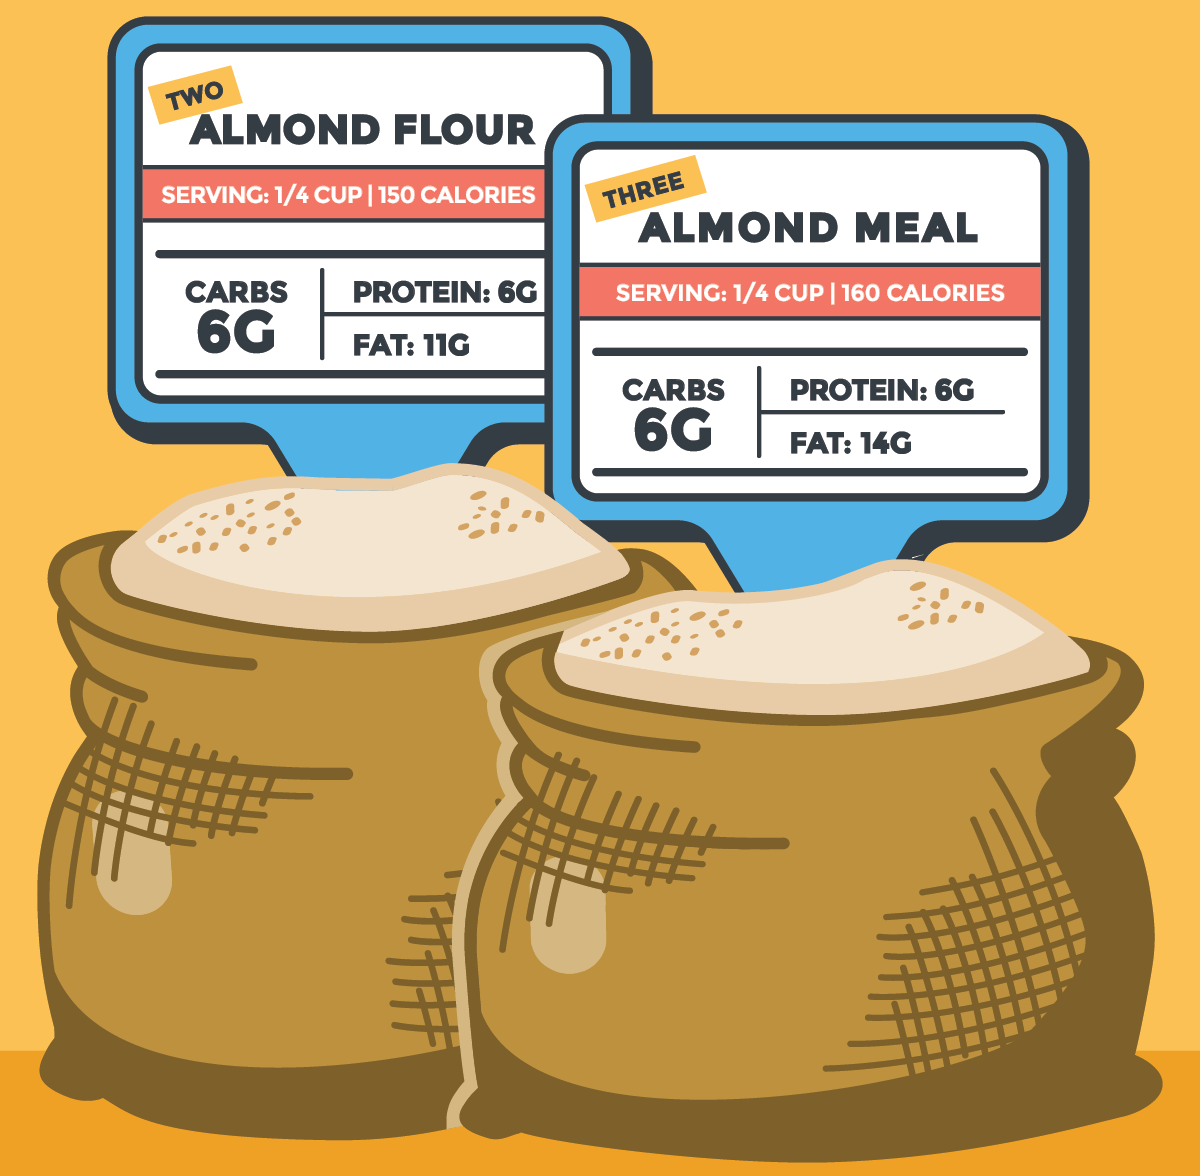 graphic illustration of almond flour and almond meal on orange background